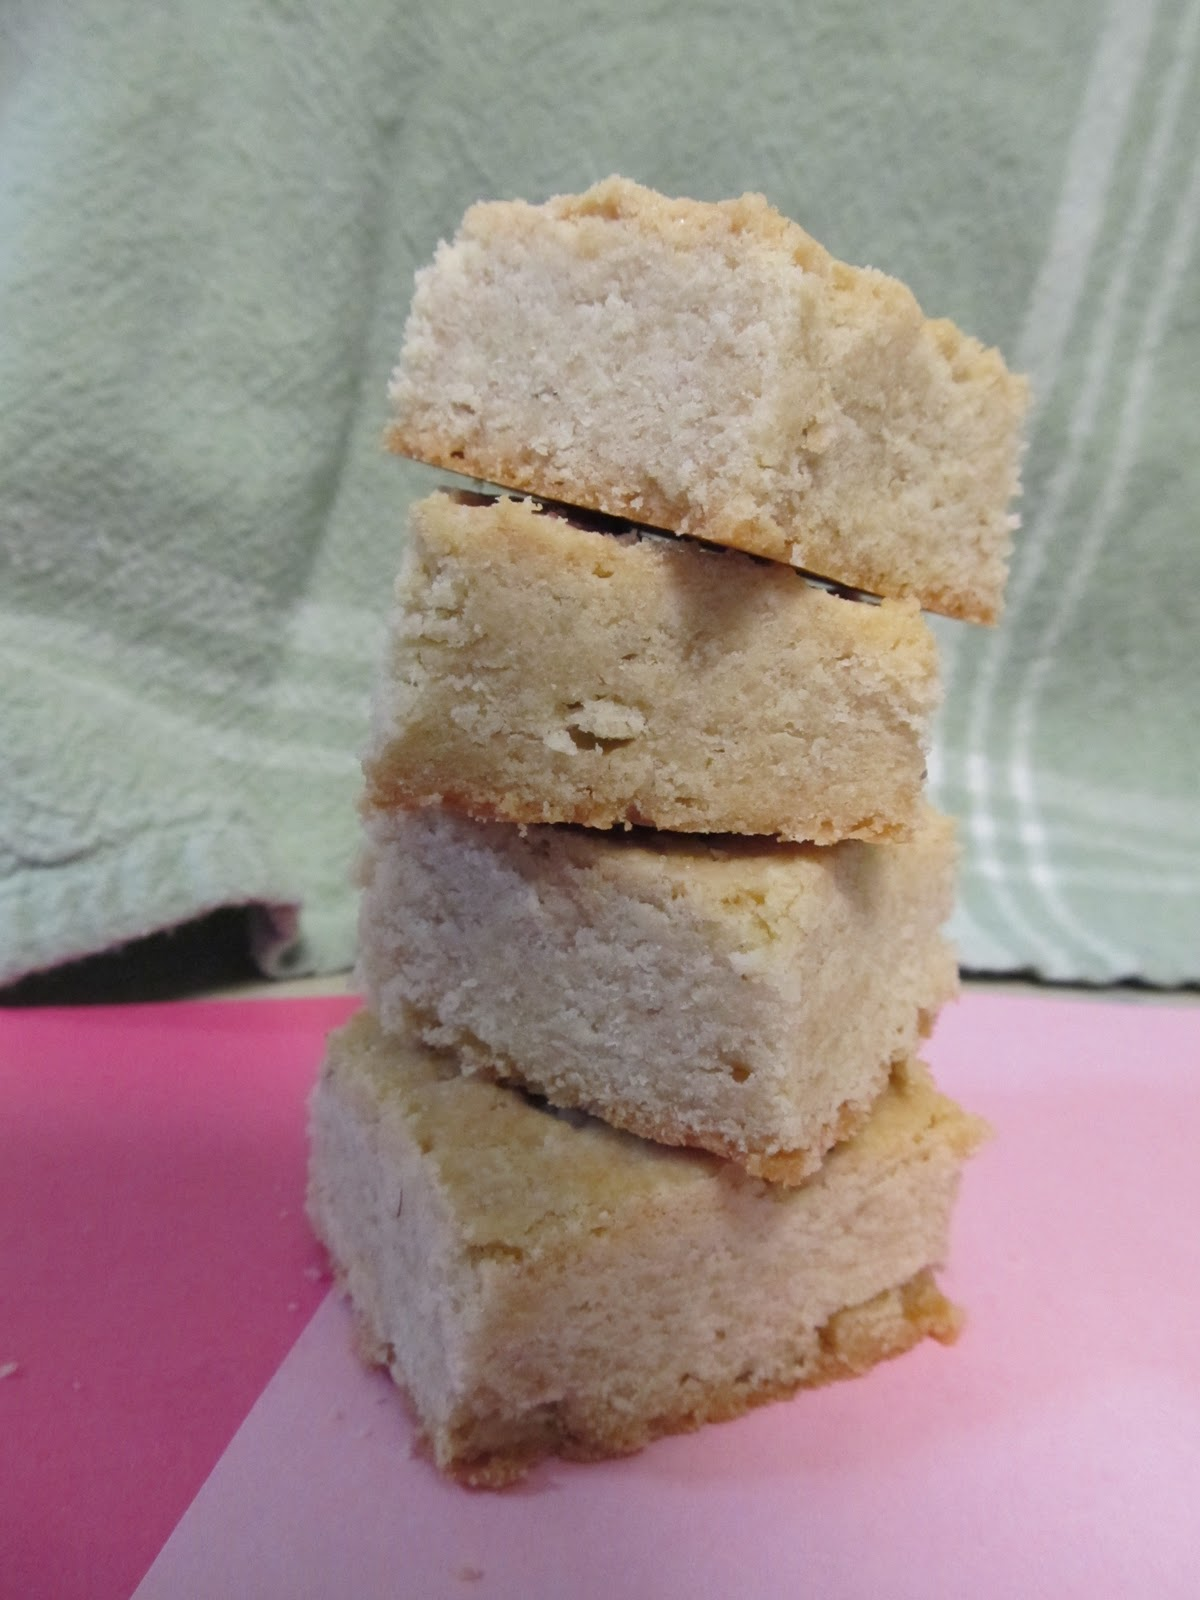 Mary Quite Contrary Bakes: Salted Lavender Honey Shortbread